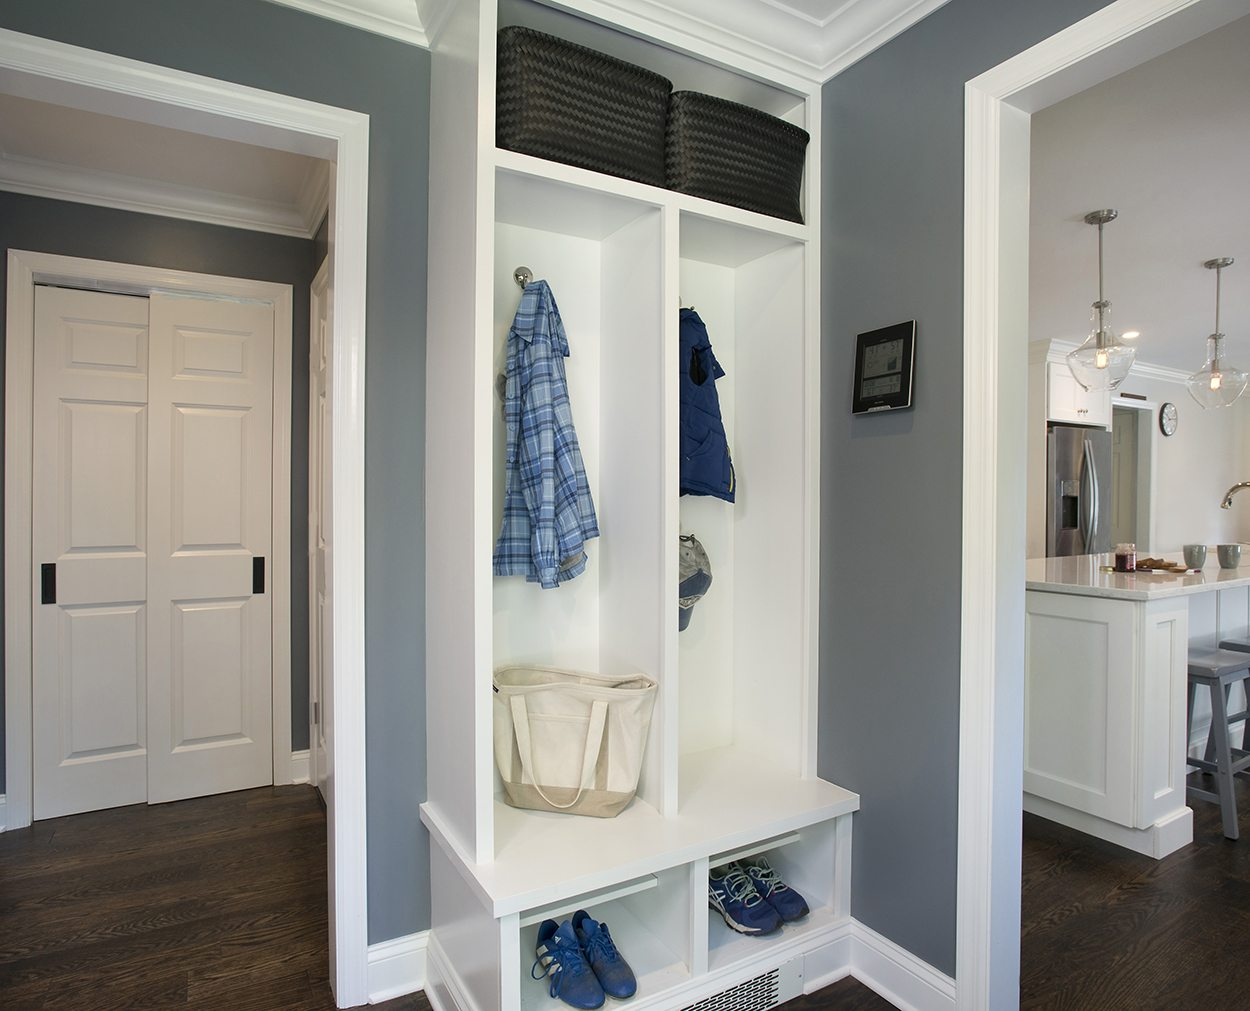 Mudroom and kitchen in Clark Construction's whole house remodel design